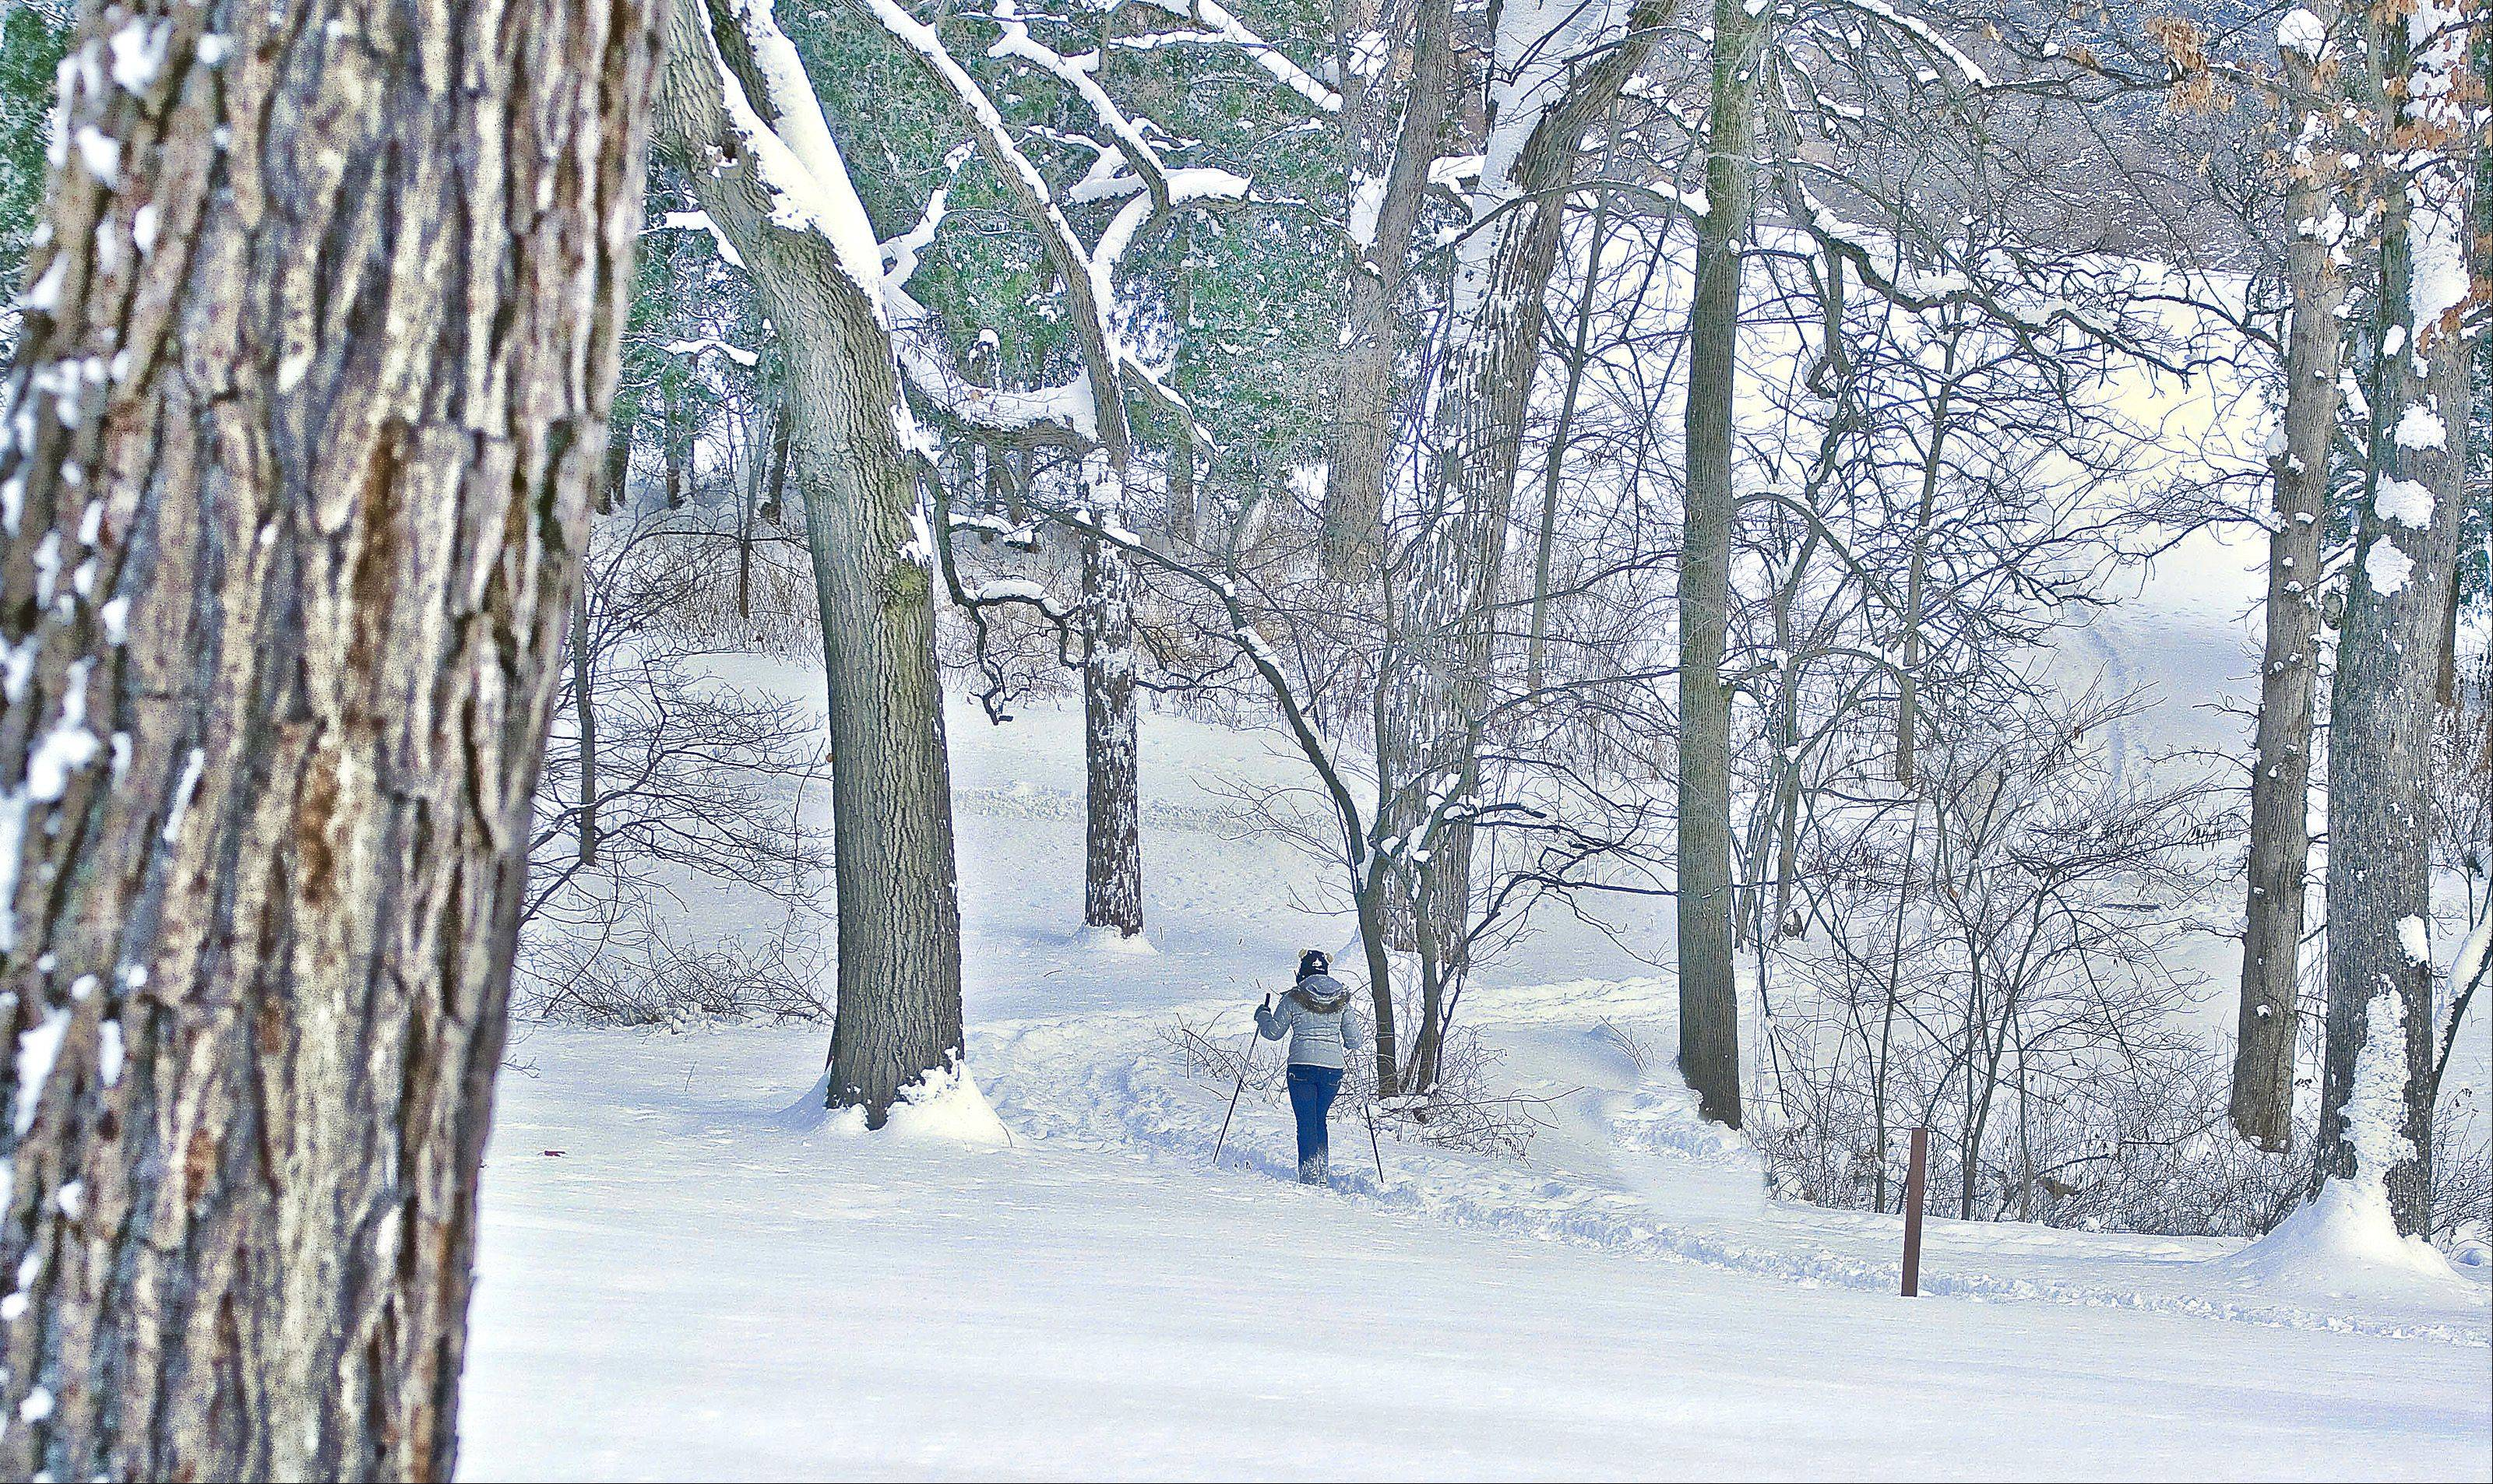 Don't let the snow scare you from enjoying the outside. I took this of my daughter cross country skiing at the Morton Arboretum.